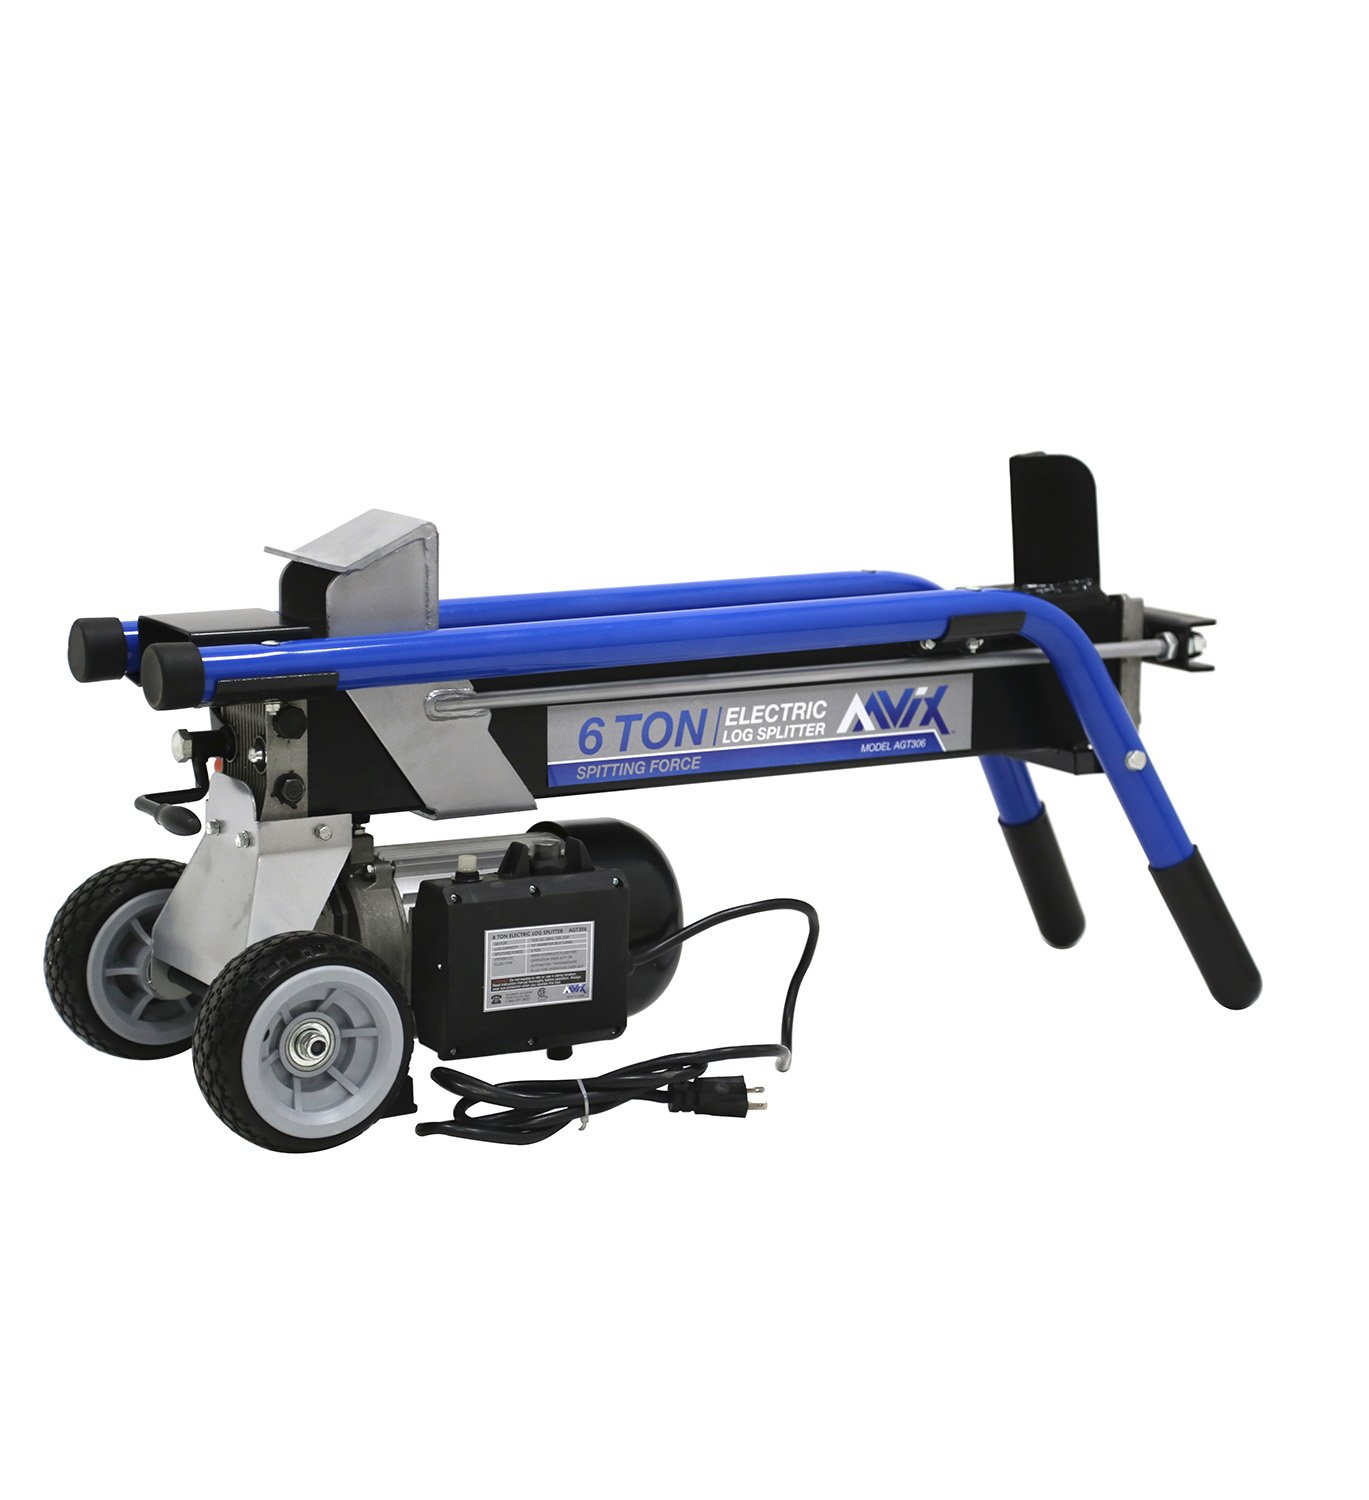 AAVIX AGT306 Electric Log Splitter, 6 Tons by AAVIX